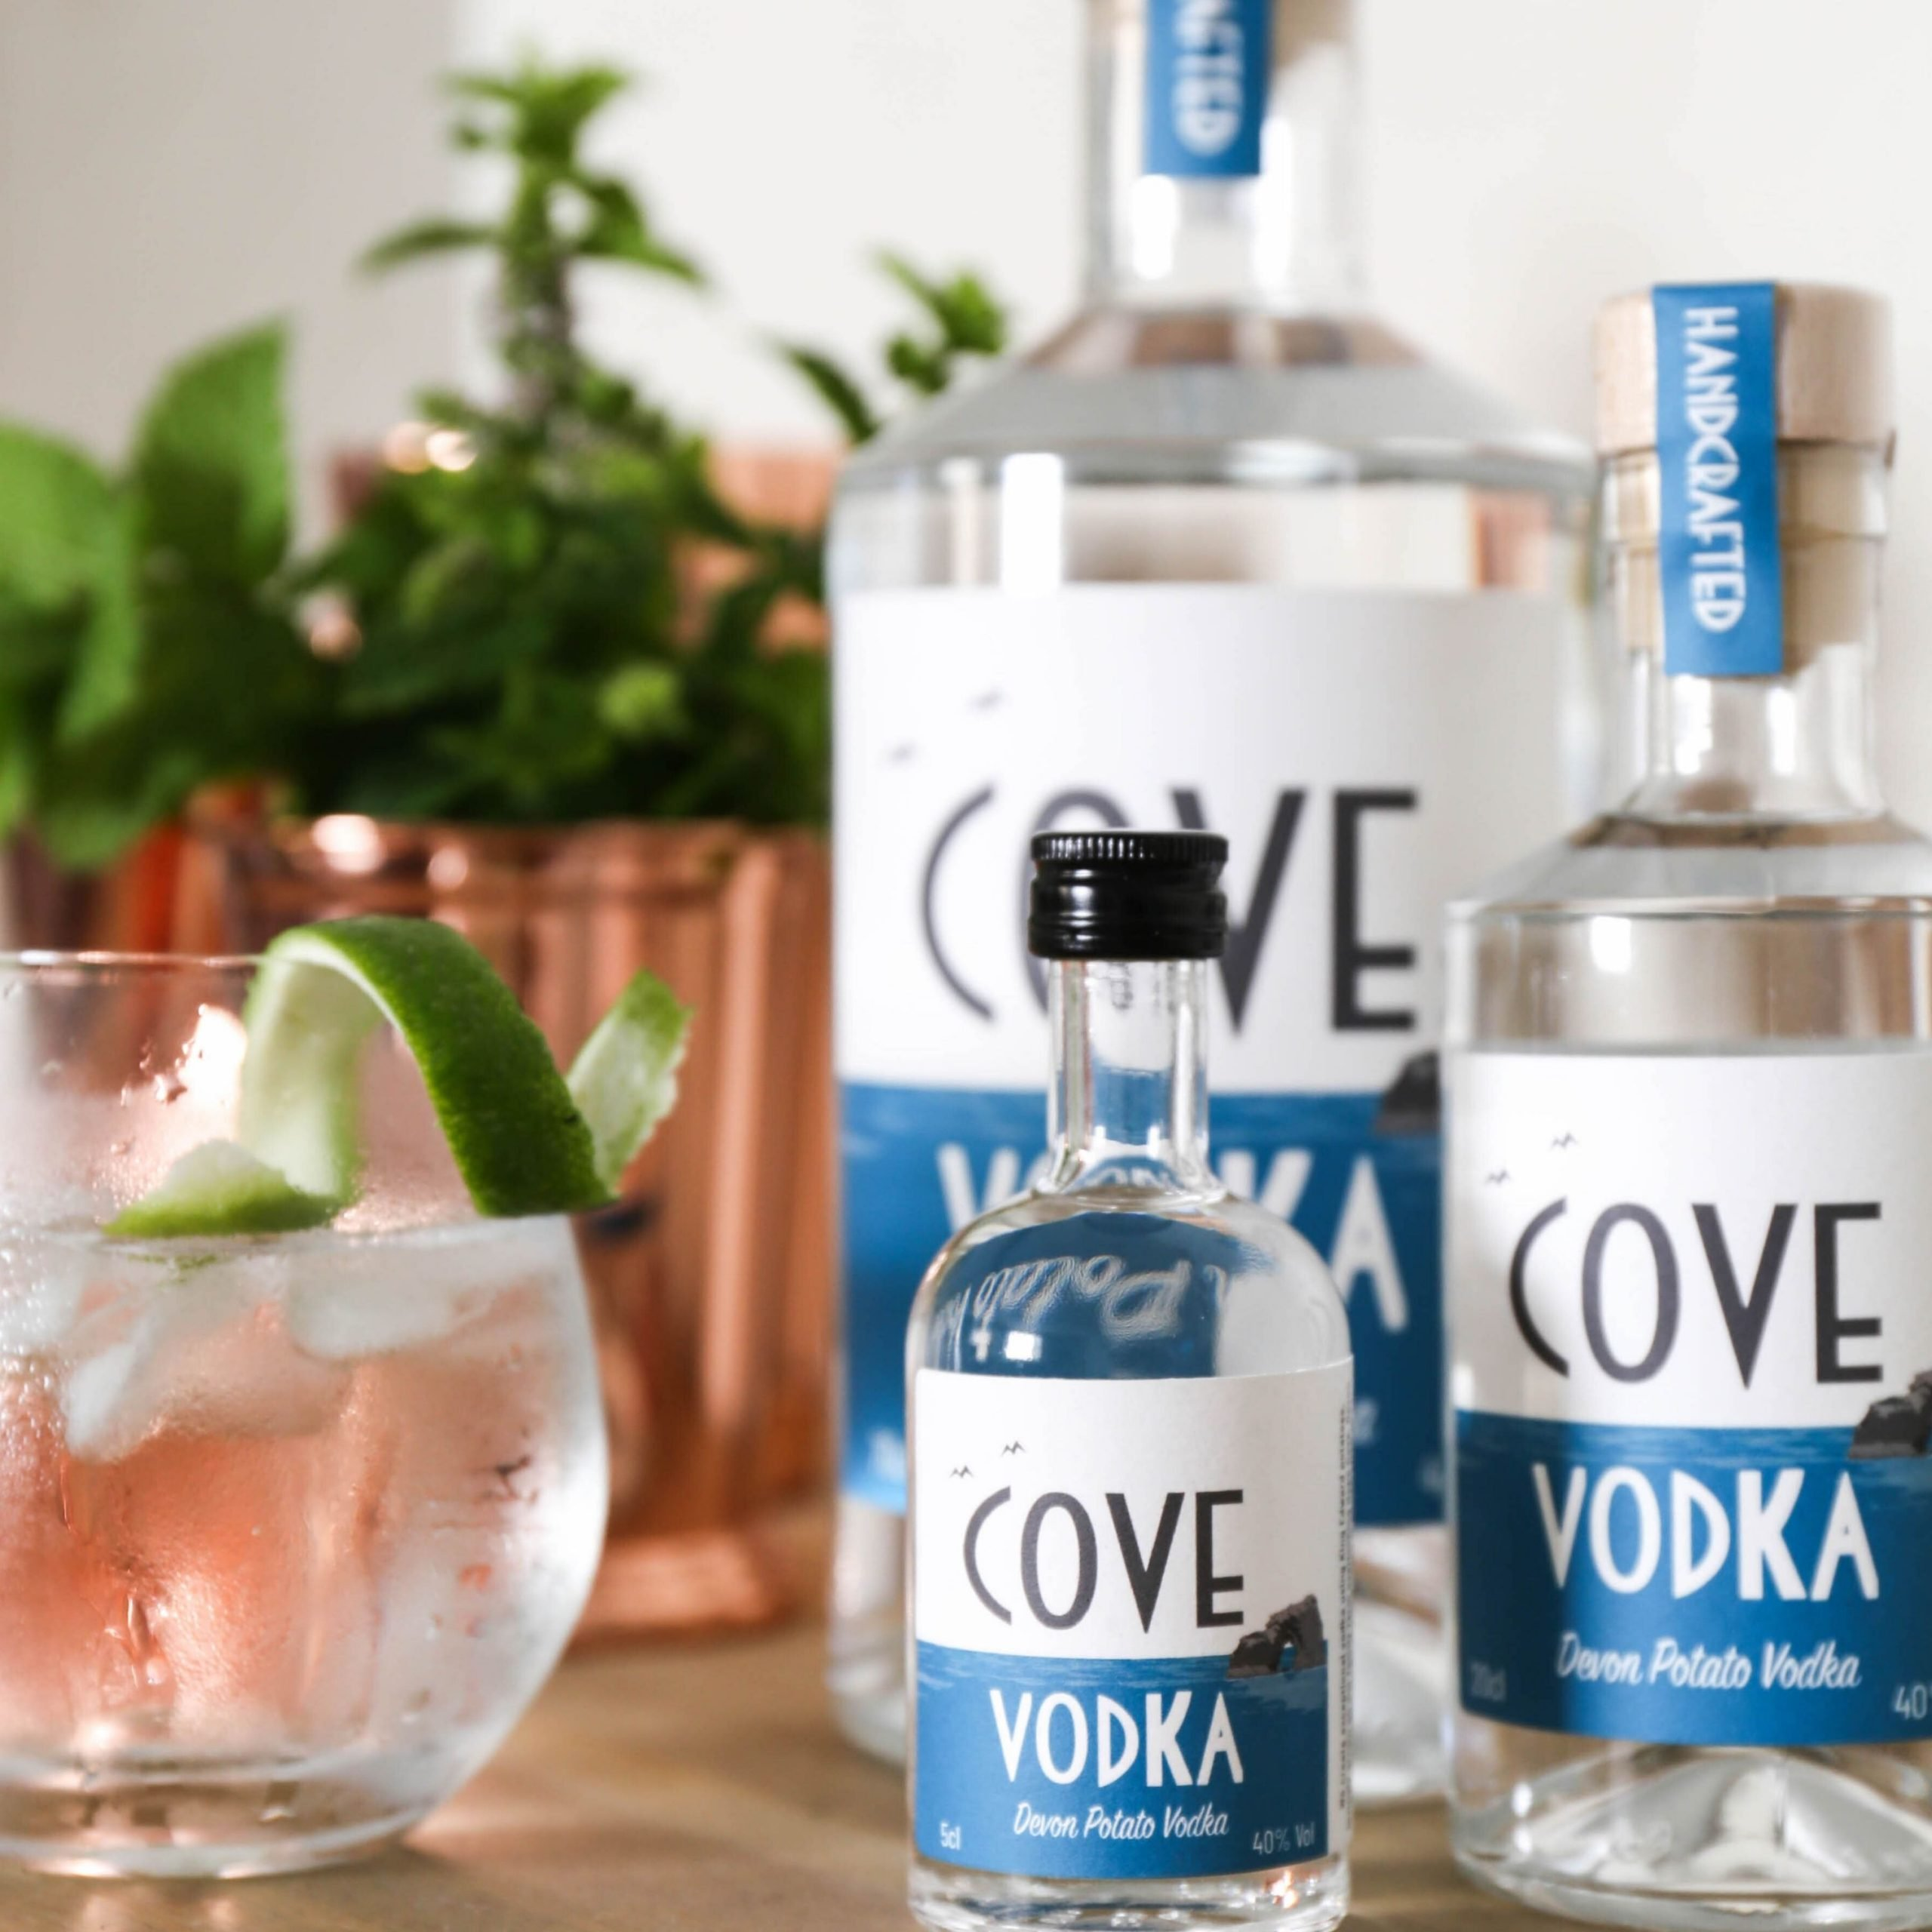 Cove Vodka Perfect serve - Vodka, lime and soda